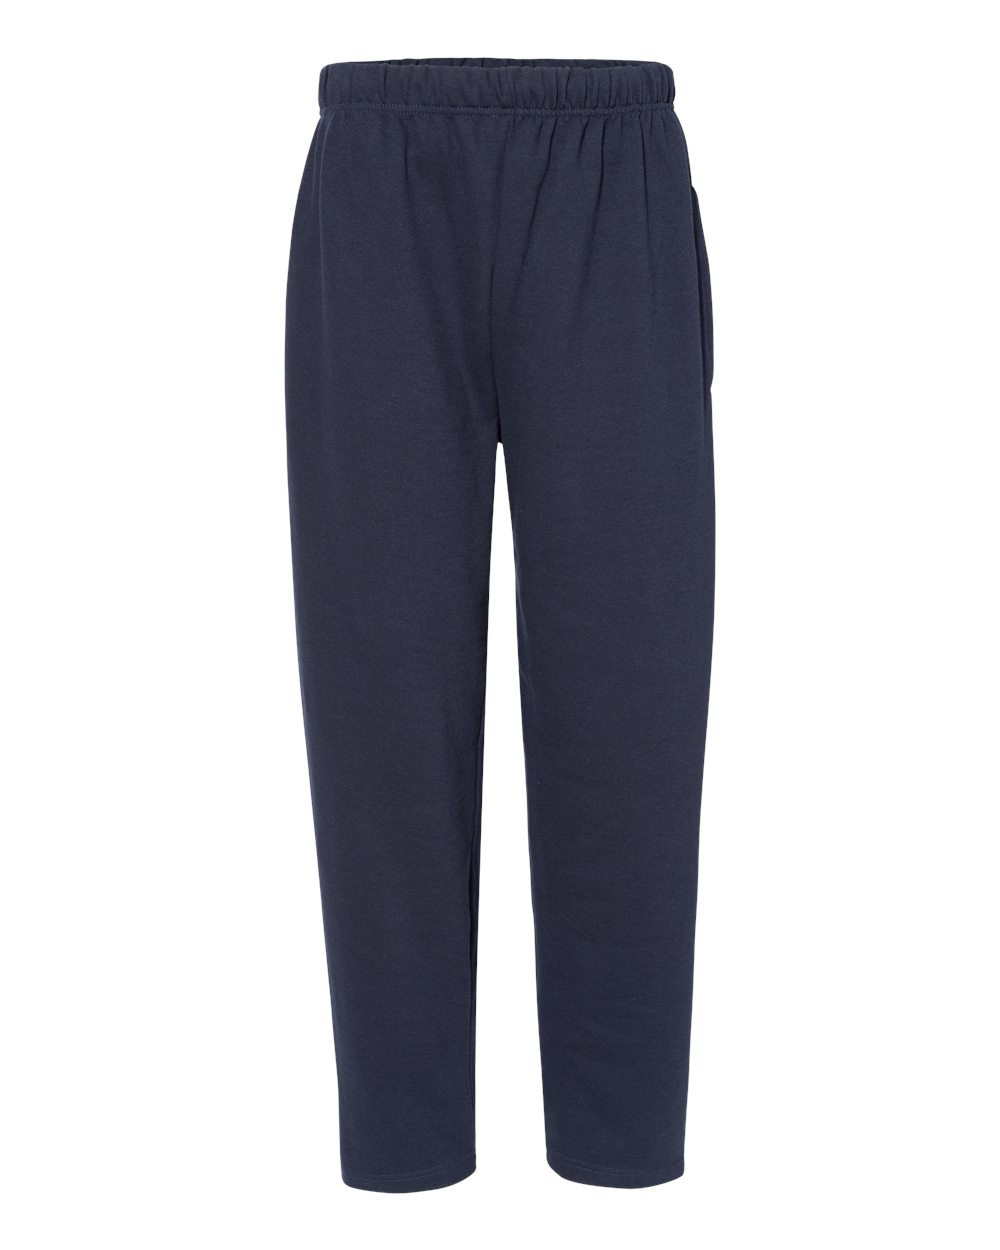 C2-Sport-Mens-Open-Bottom-Sweatpants-With-Pockets-5577-up-to-4XL thumbnail 12